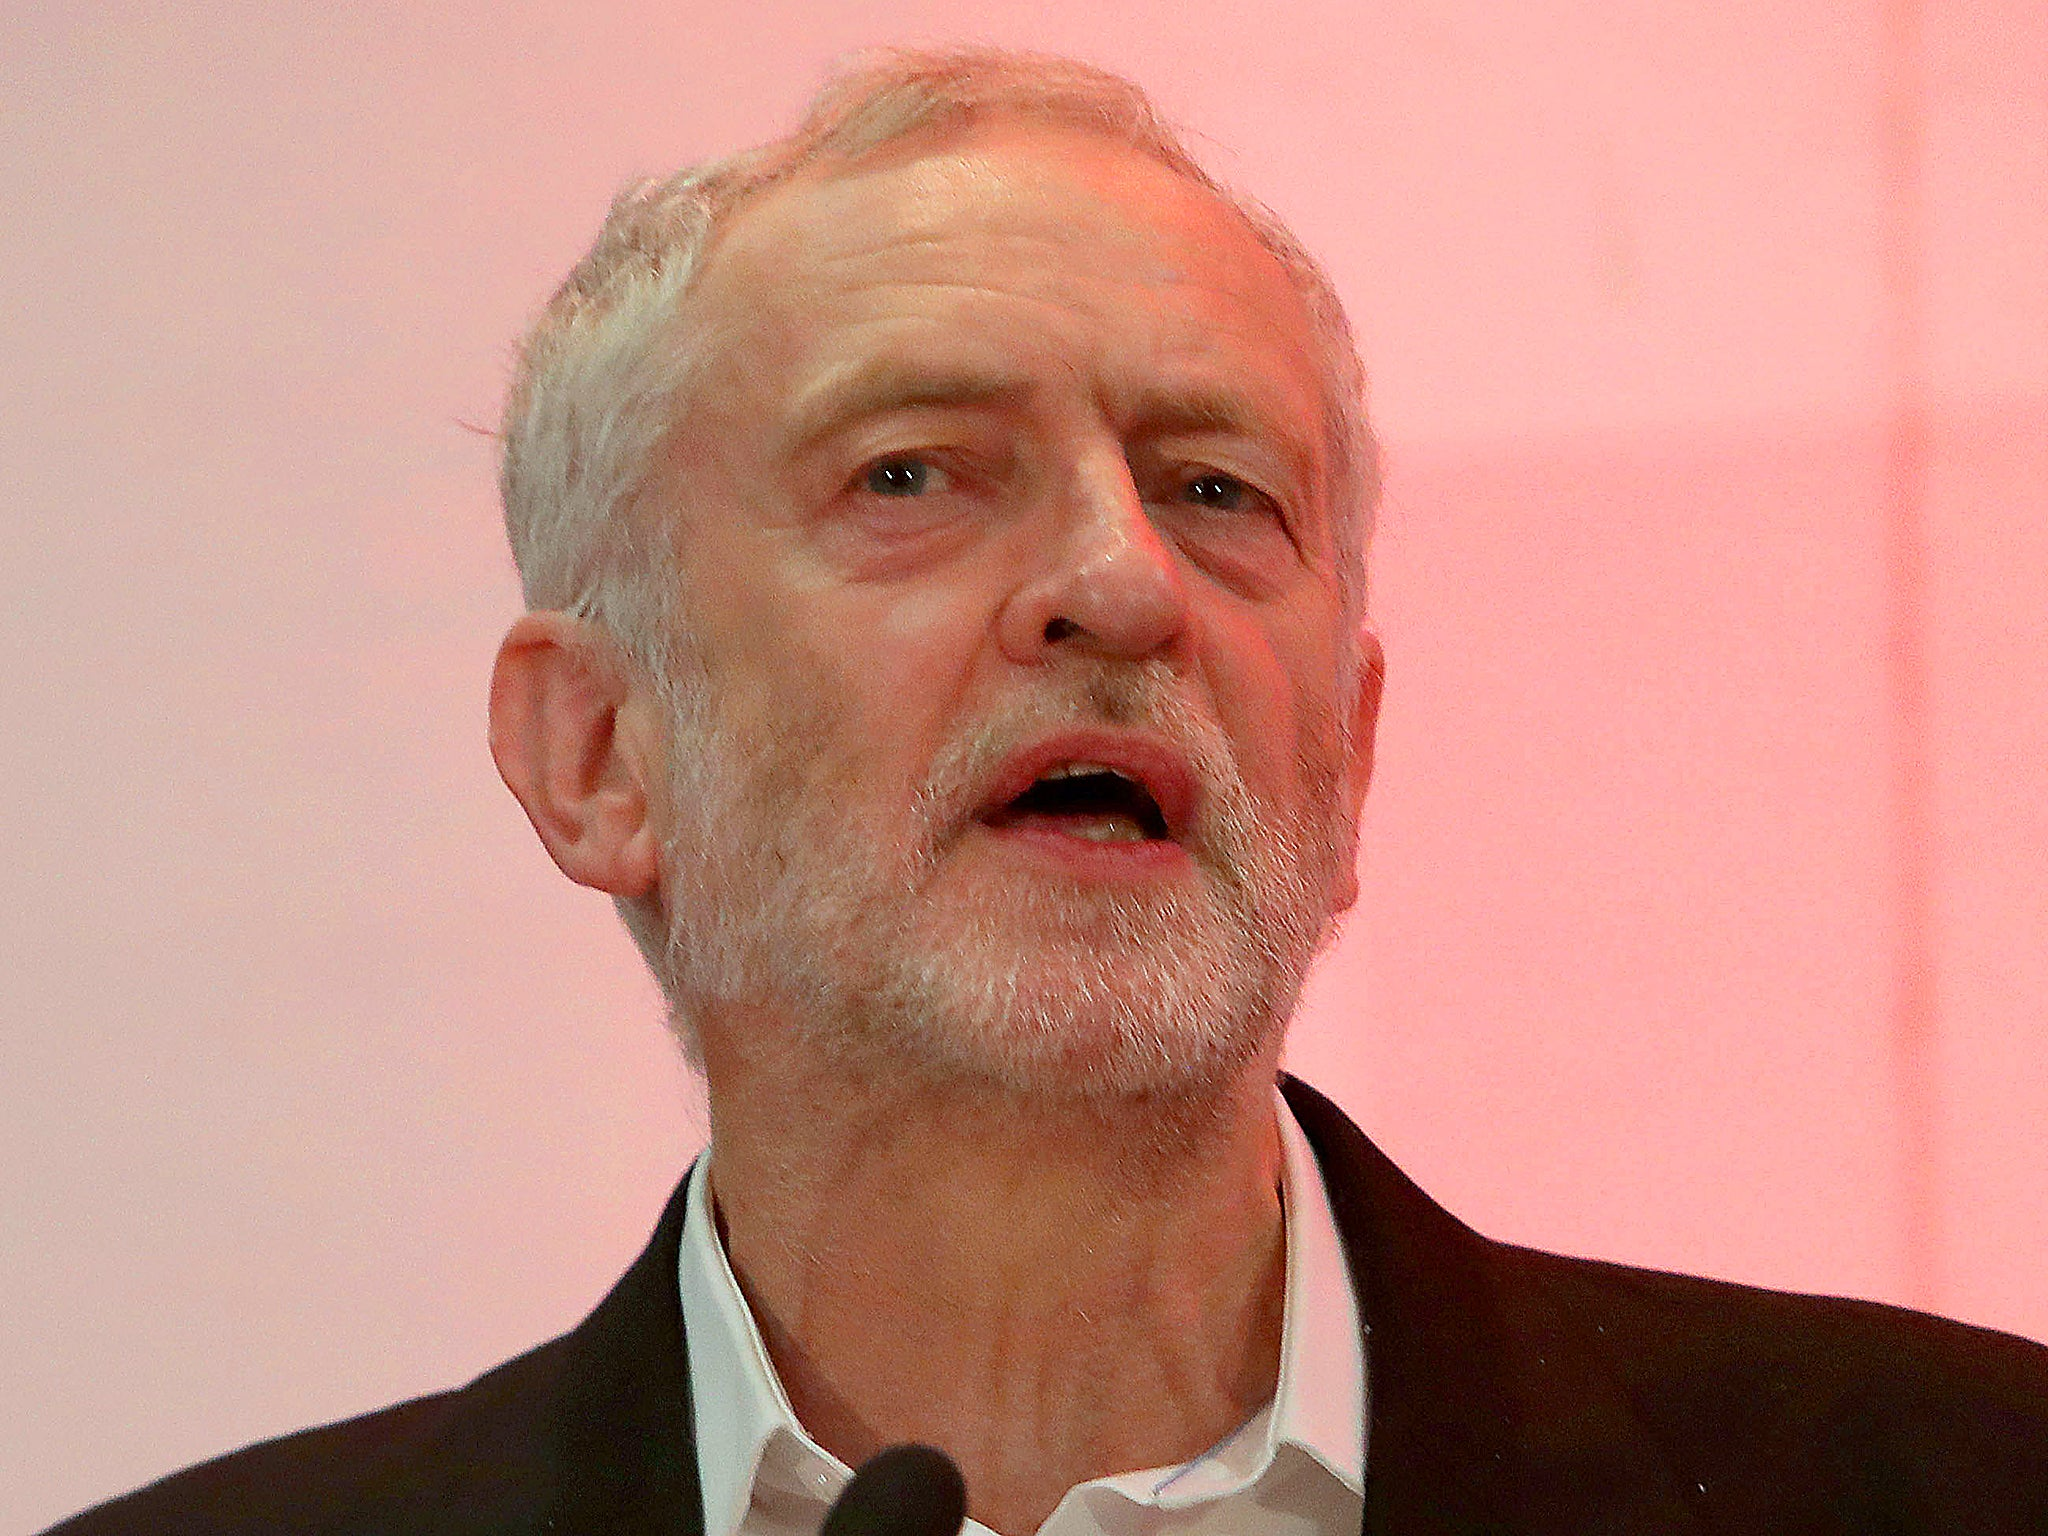 Jeremy corbyn hails fidel castro as a champion of social justice the independent